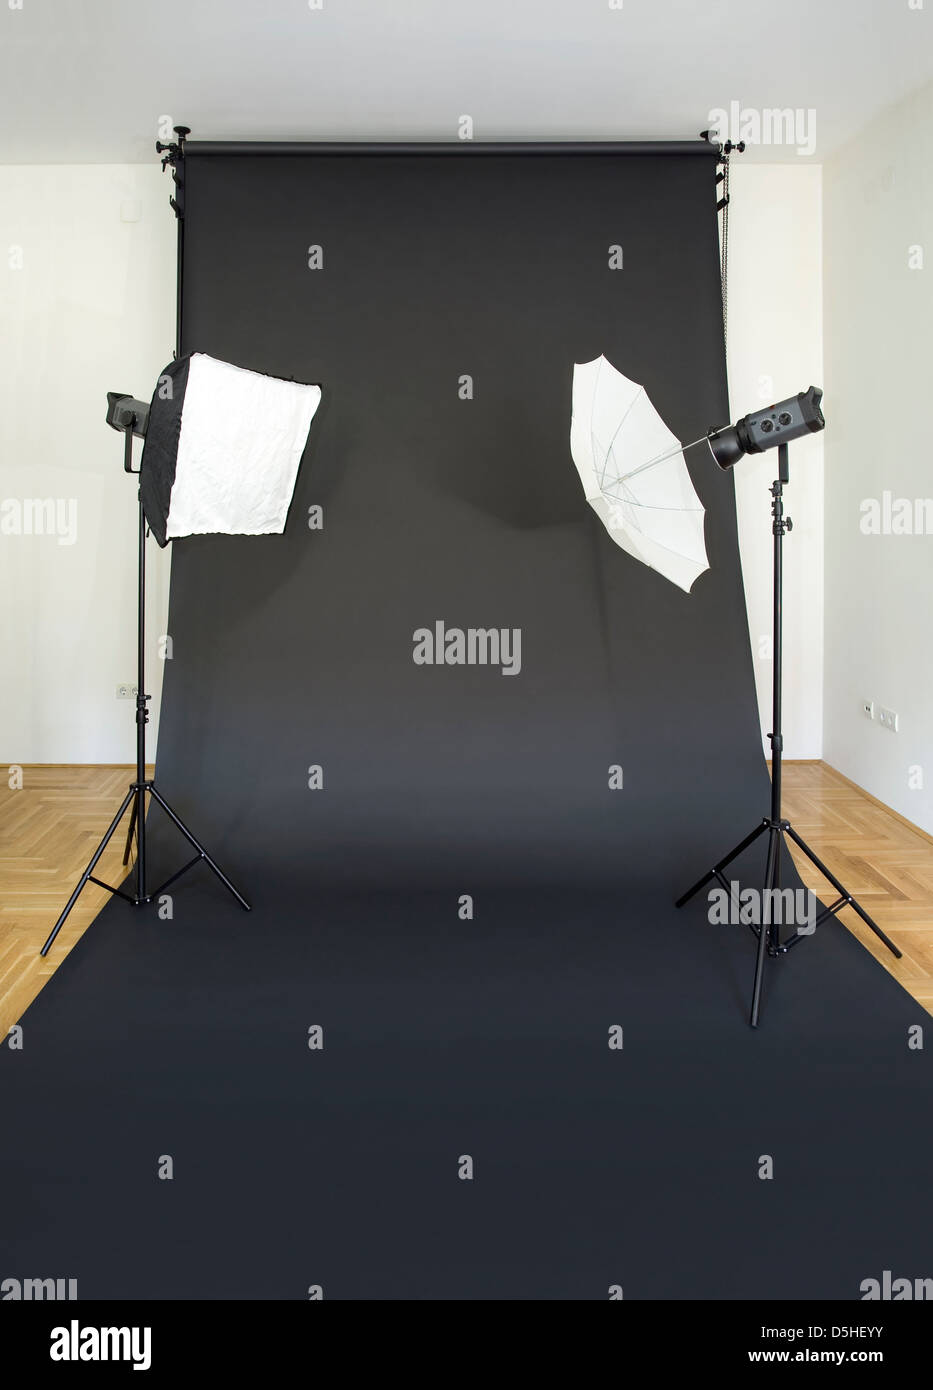 Empty Photo Studio with Lights and Black Backdrop - Stock Image